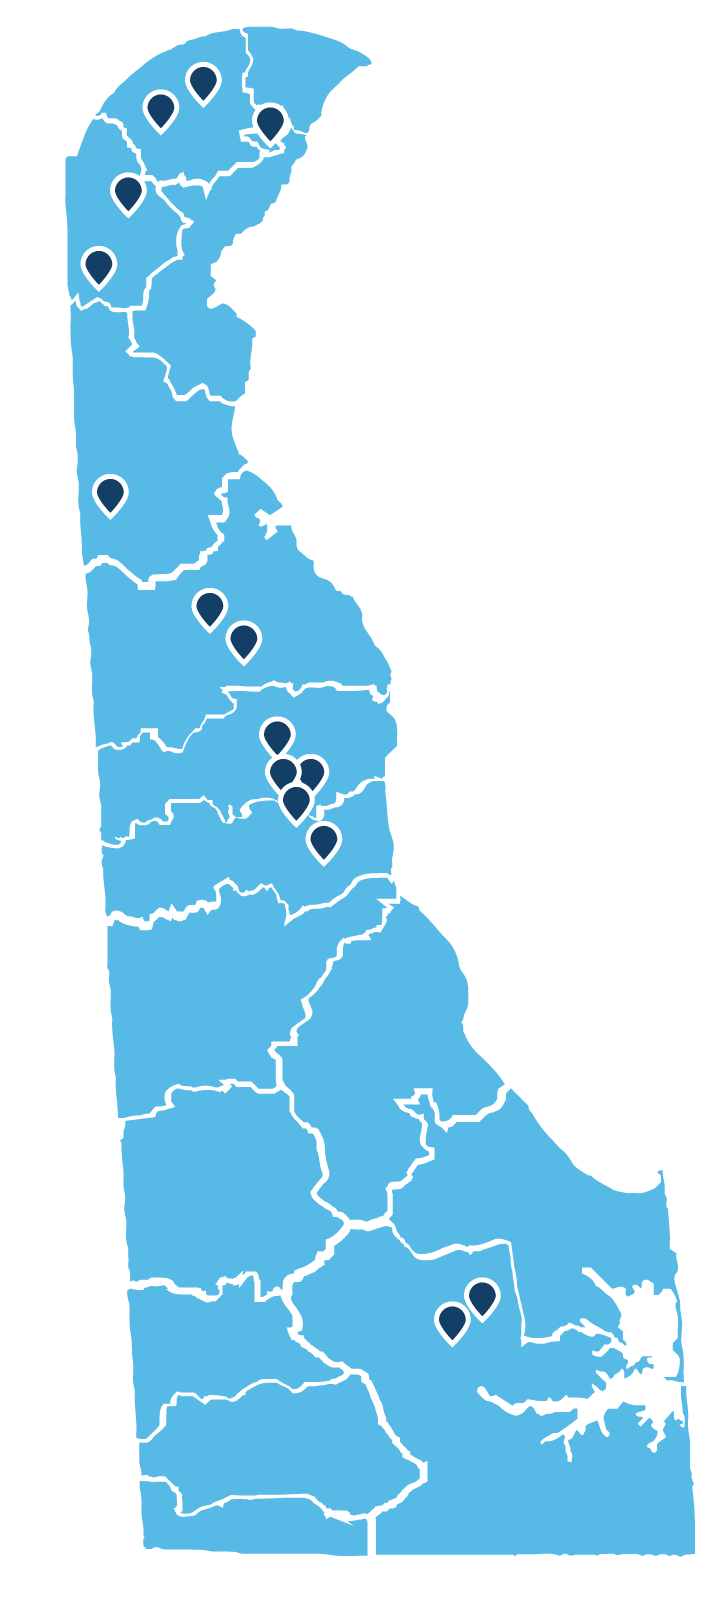 Map of State of Delaware with school districts marked with map pins